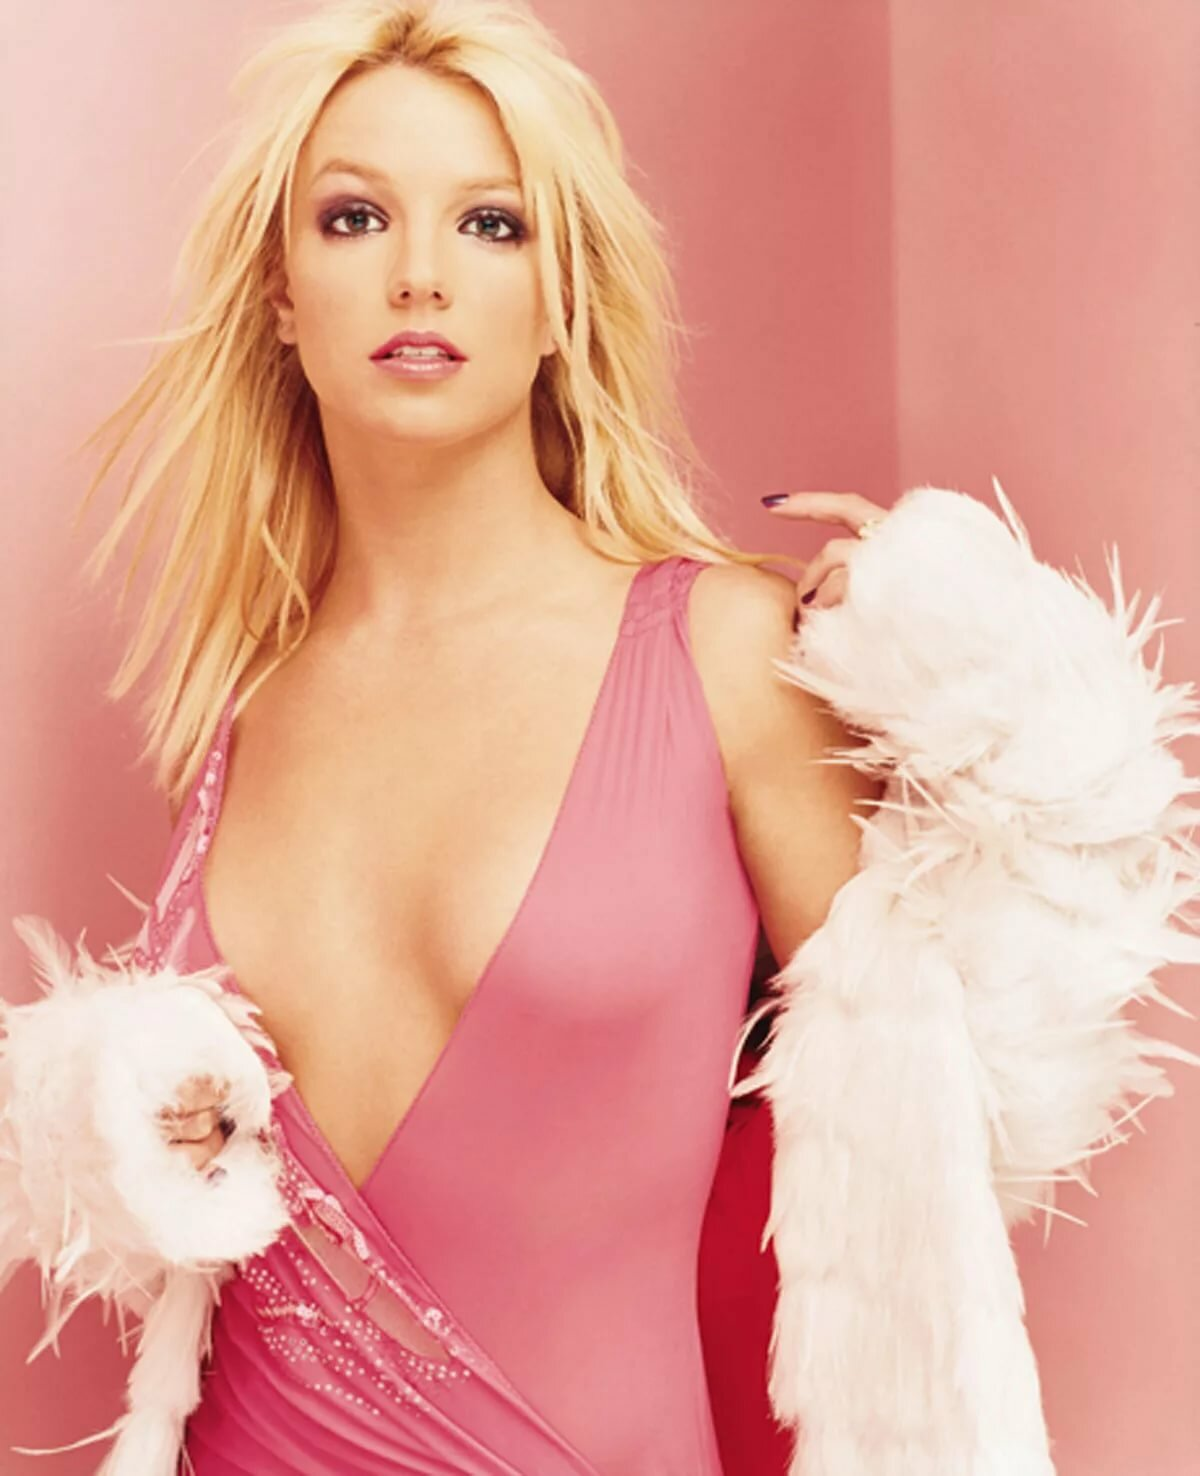 Boobs of britney spears